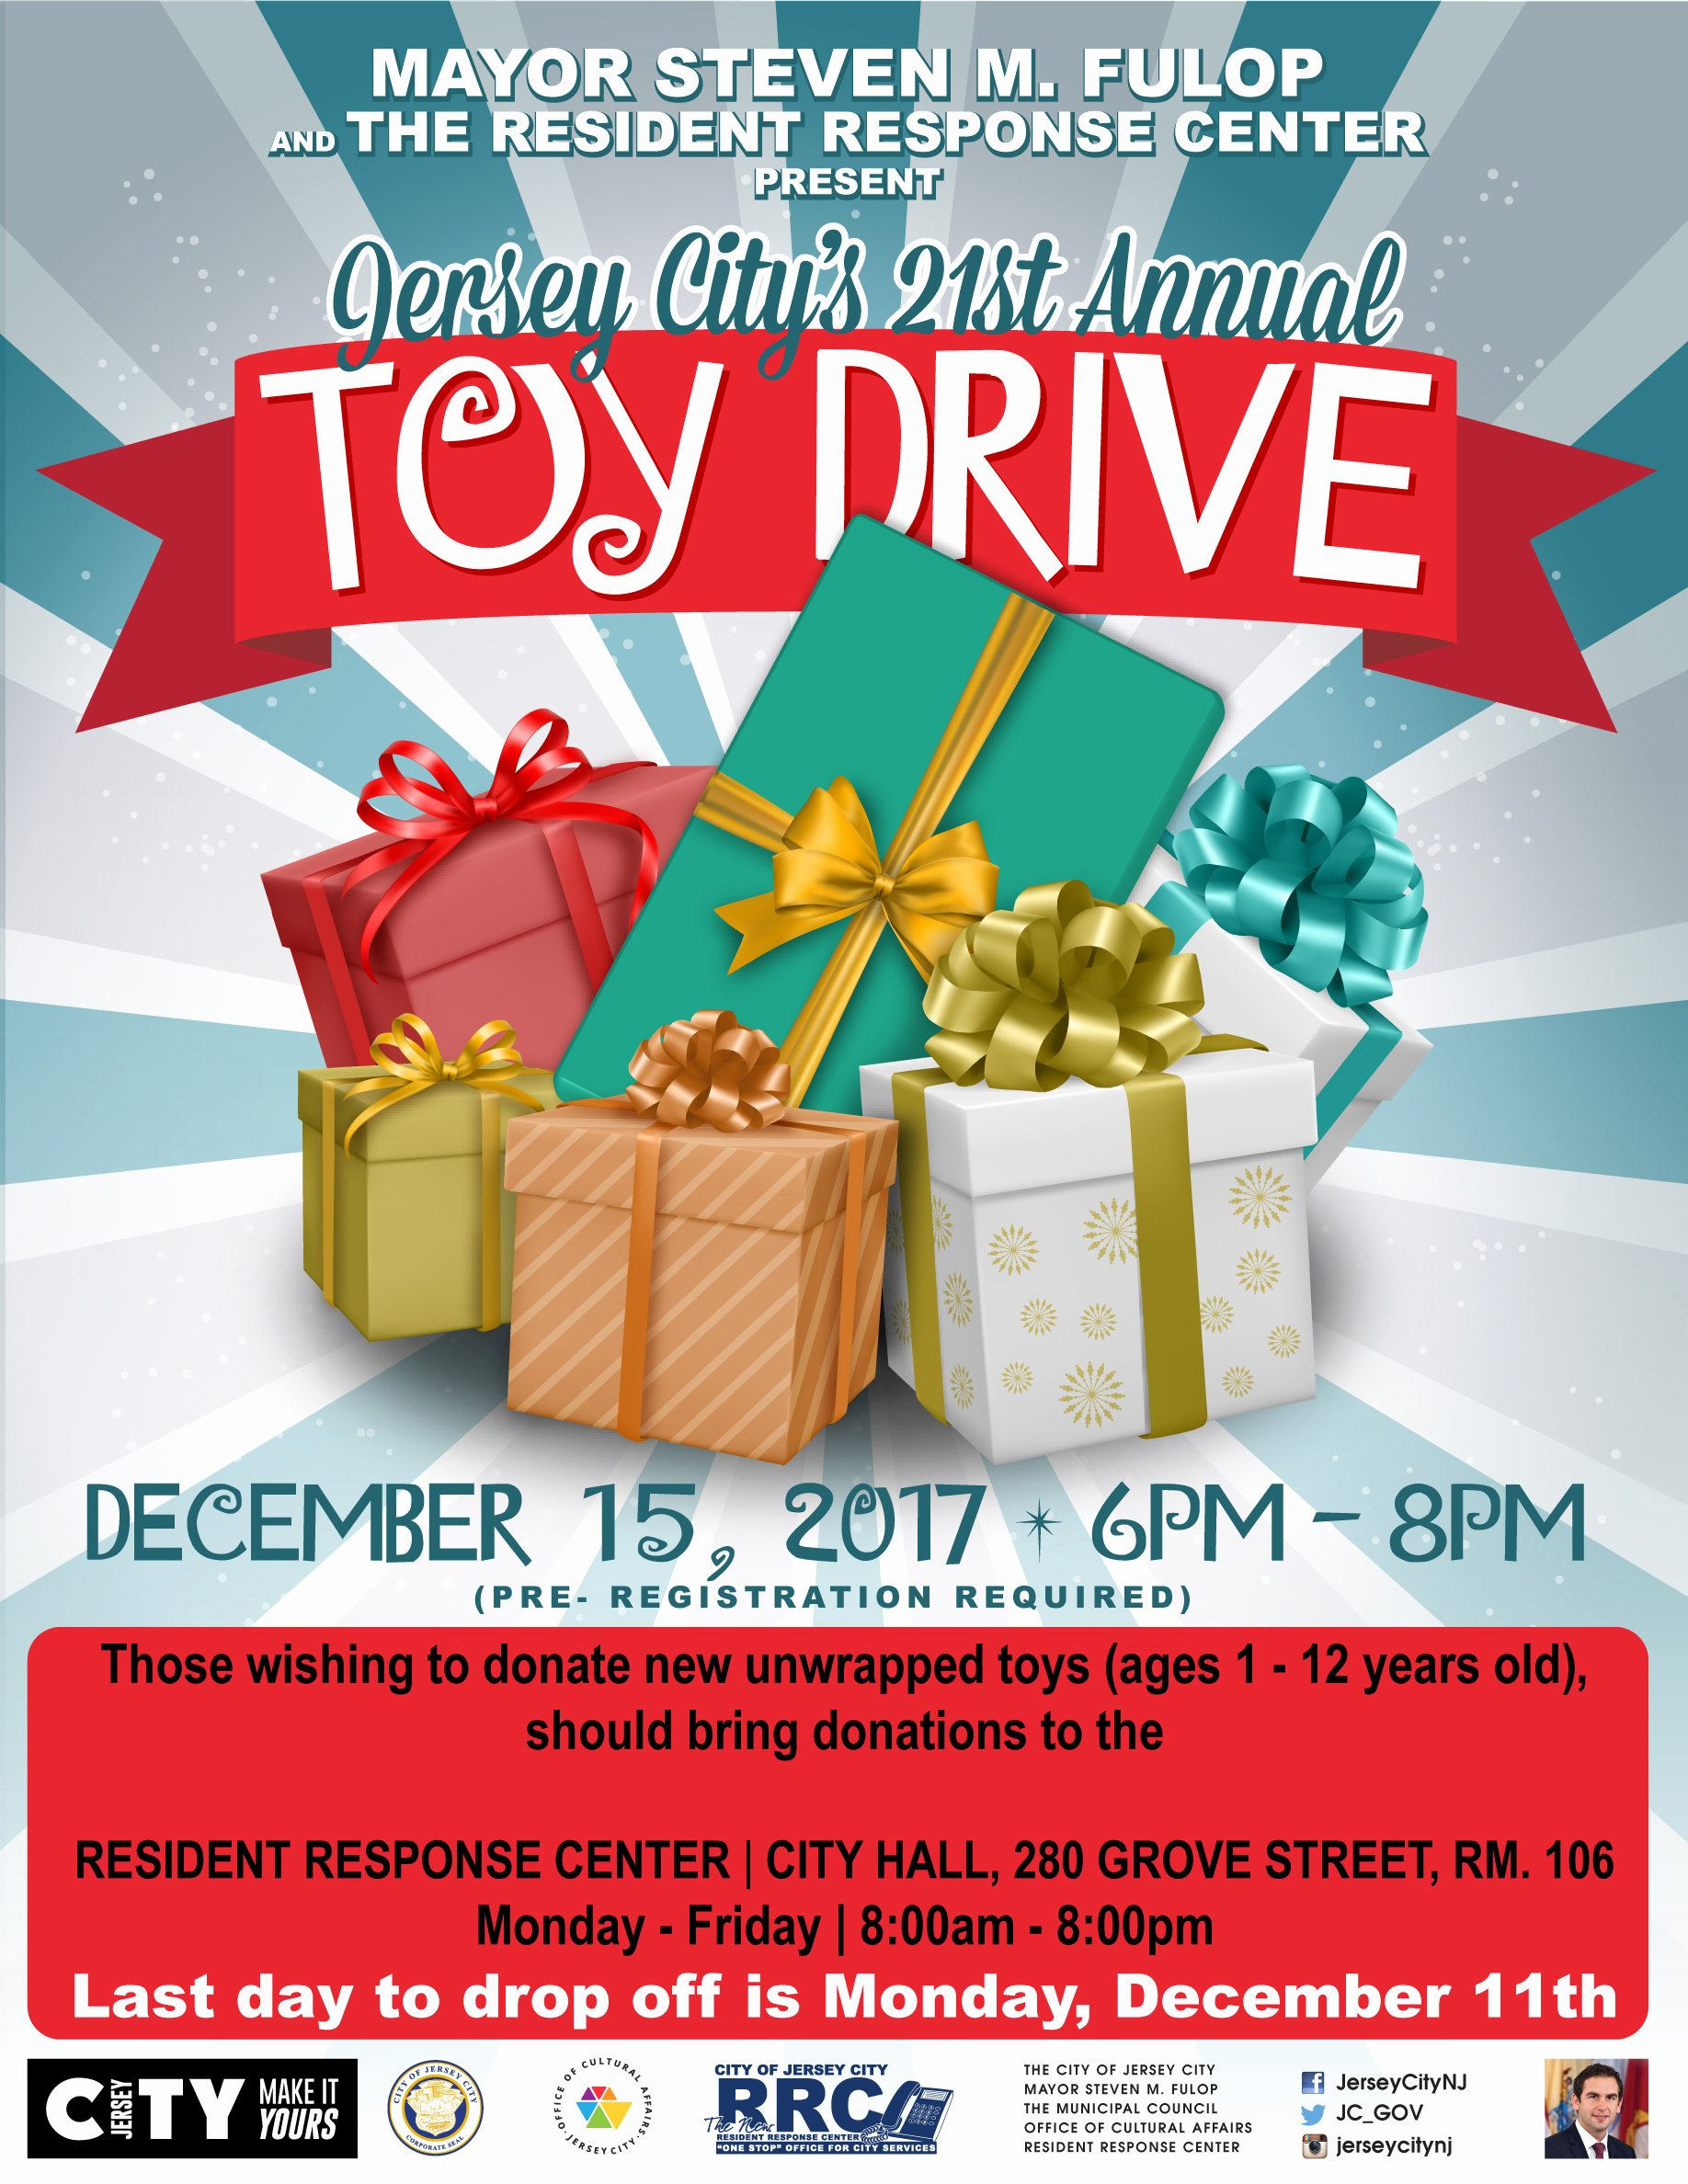 Toy Drive Flyer Template Free Luxury 21st Annual toy Drive Gift Distribution the Fice Of Cultural Affairs